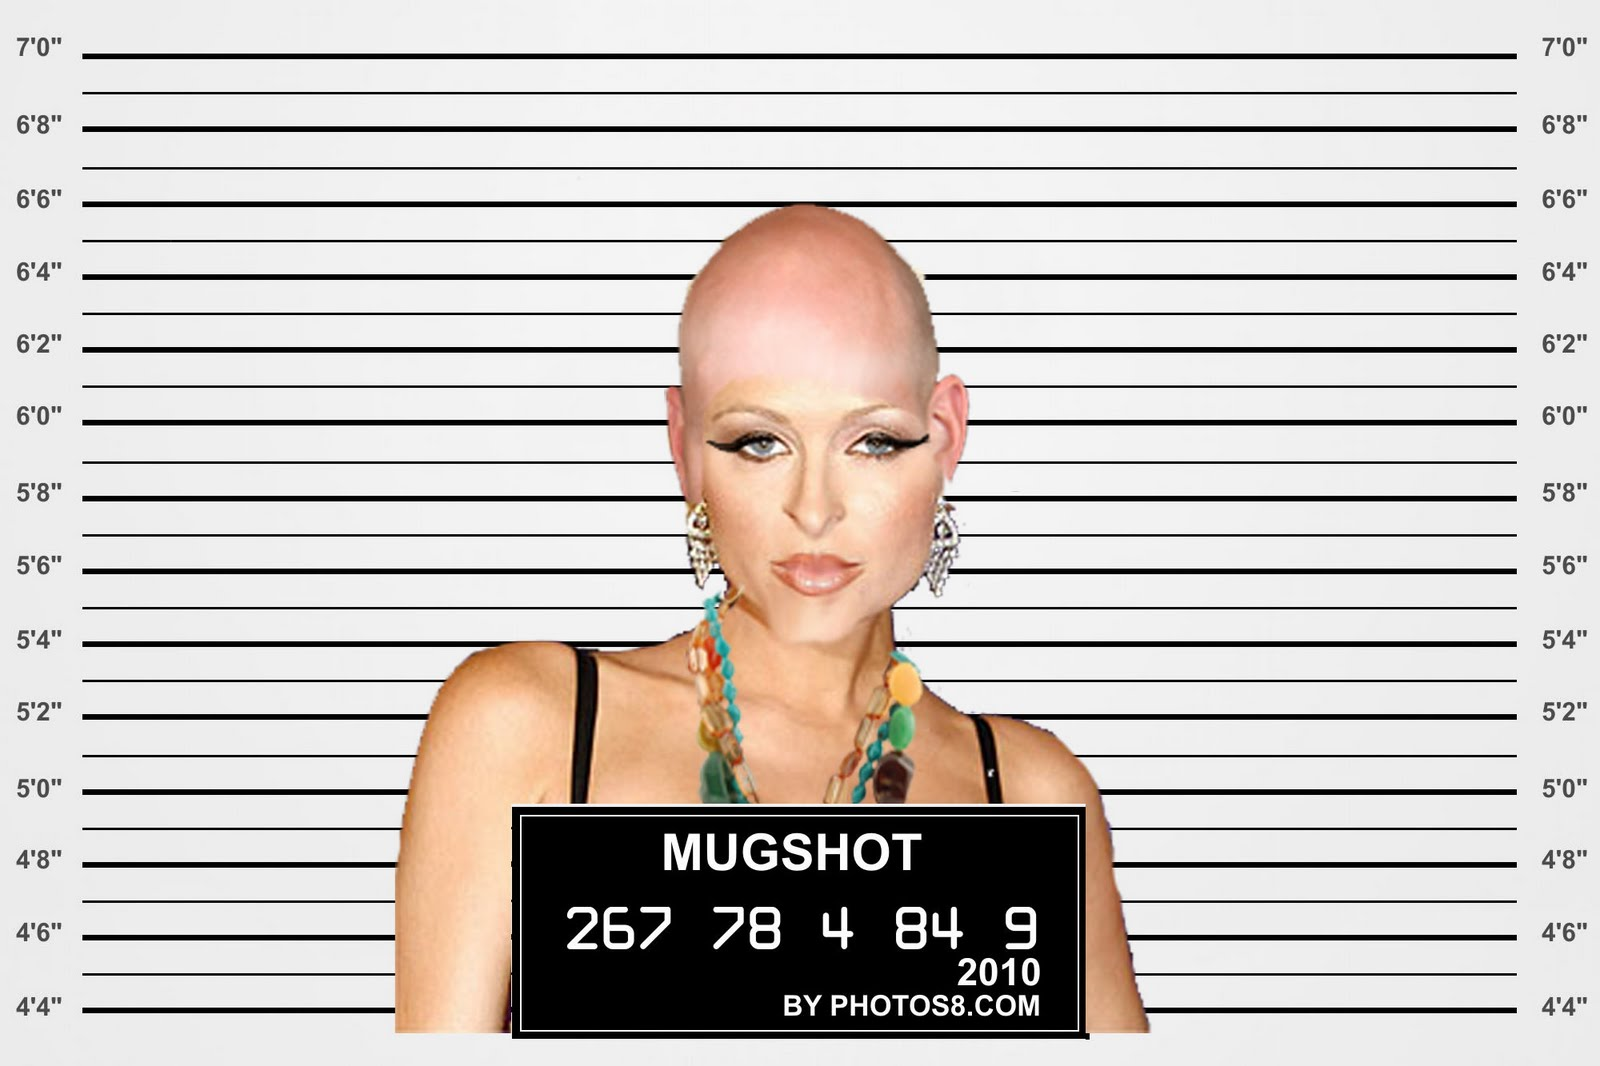 Jail+mugshot+backgrounds